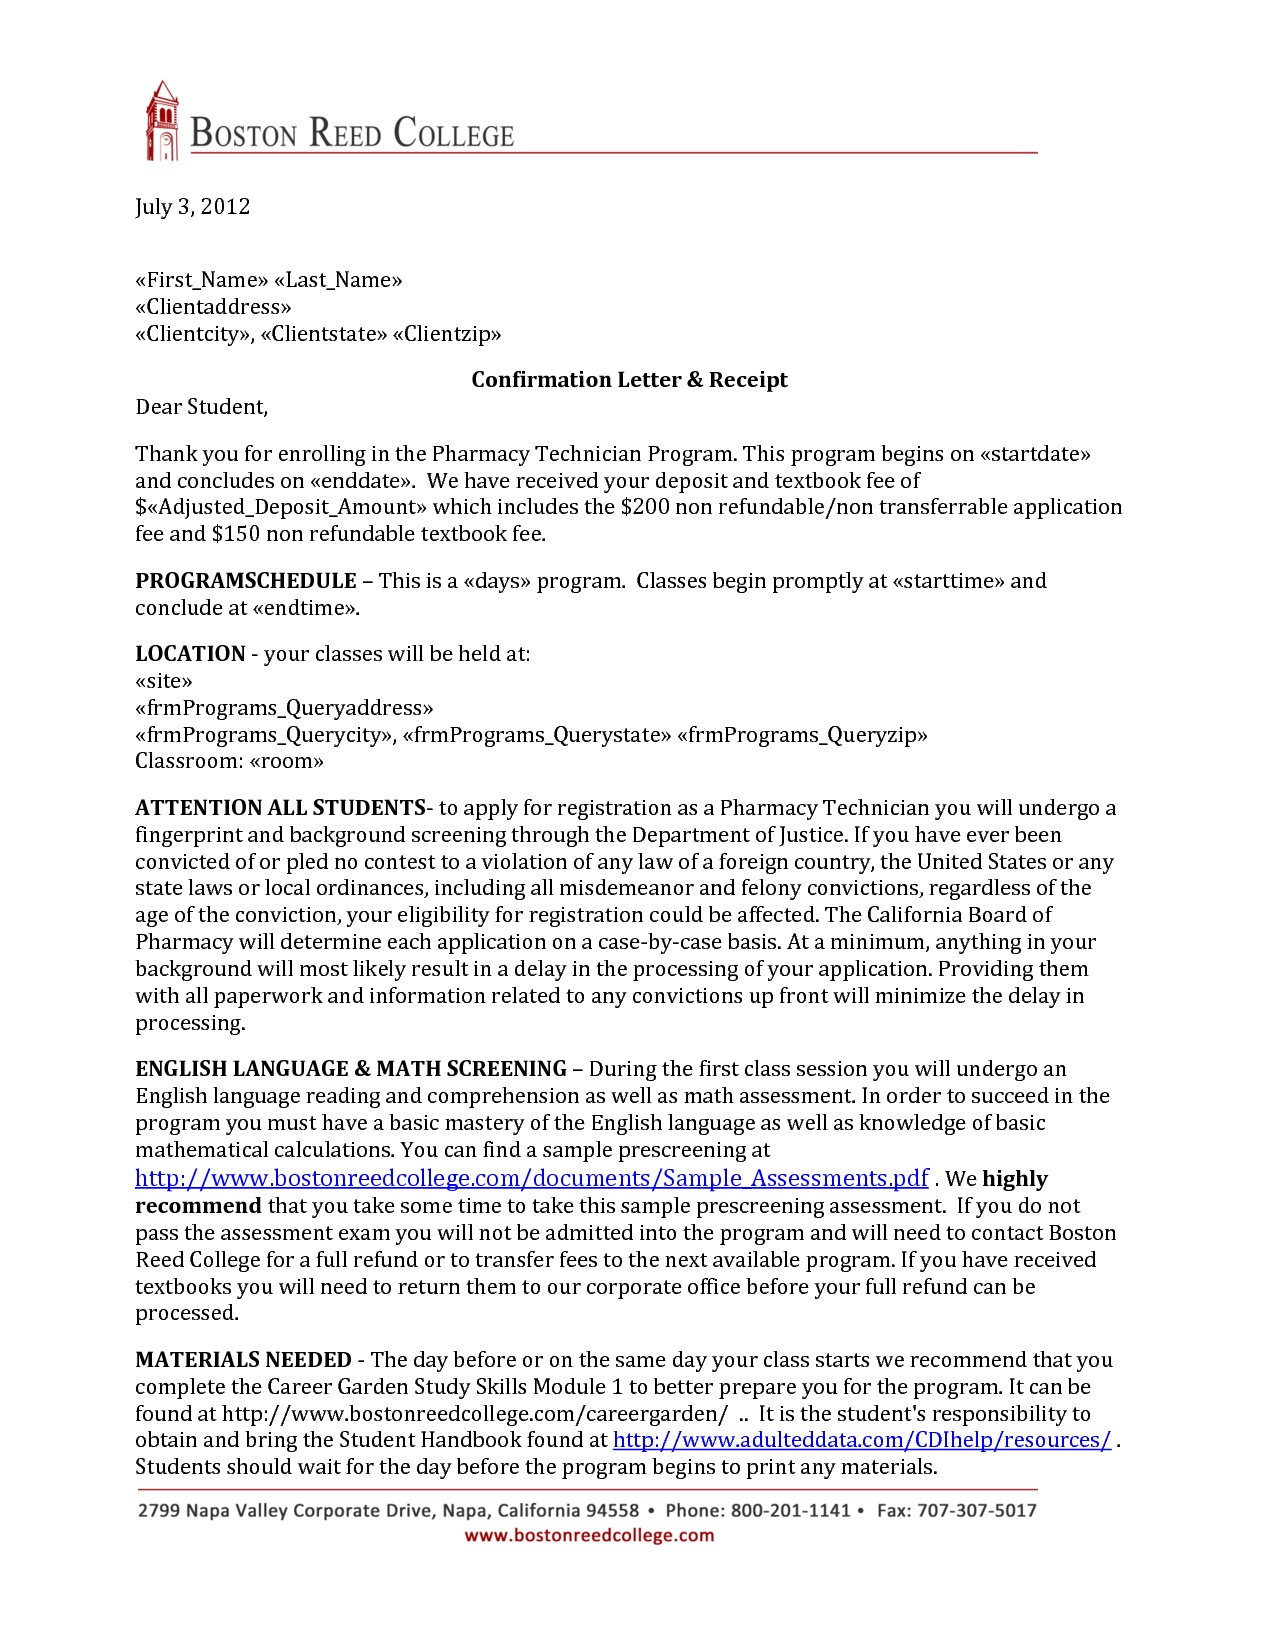 Pharmacist Cover Letter Document Blog Sample Template Inside